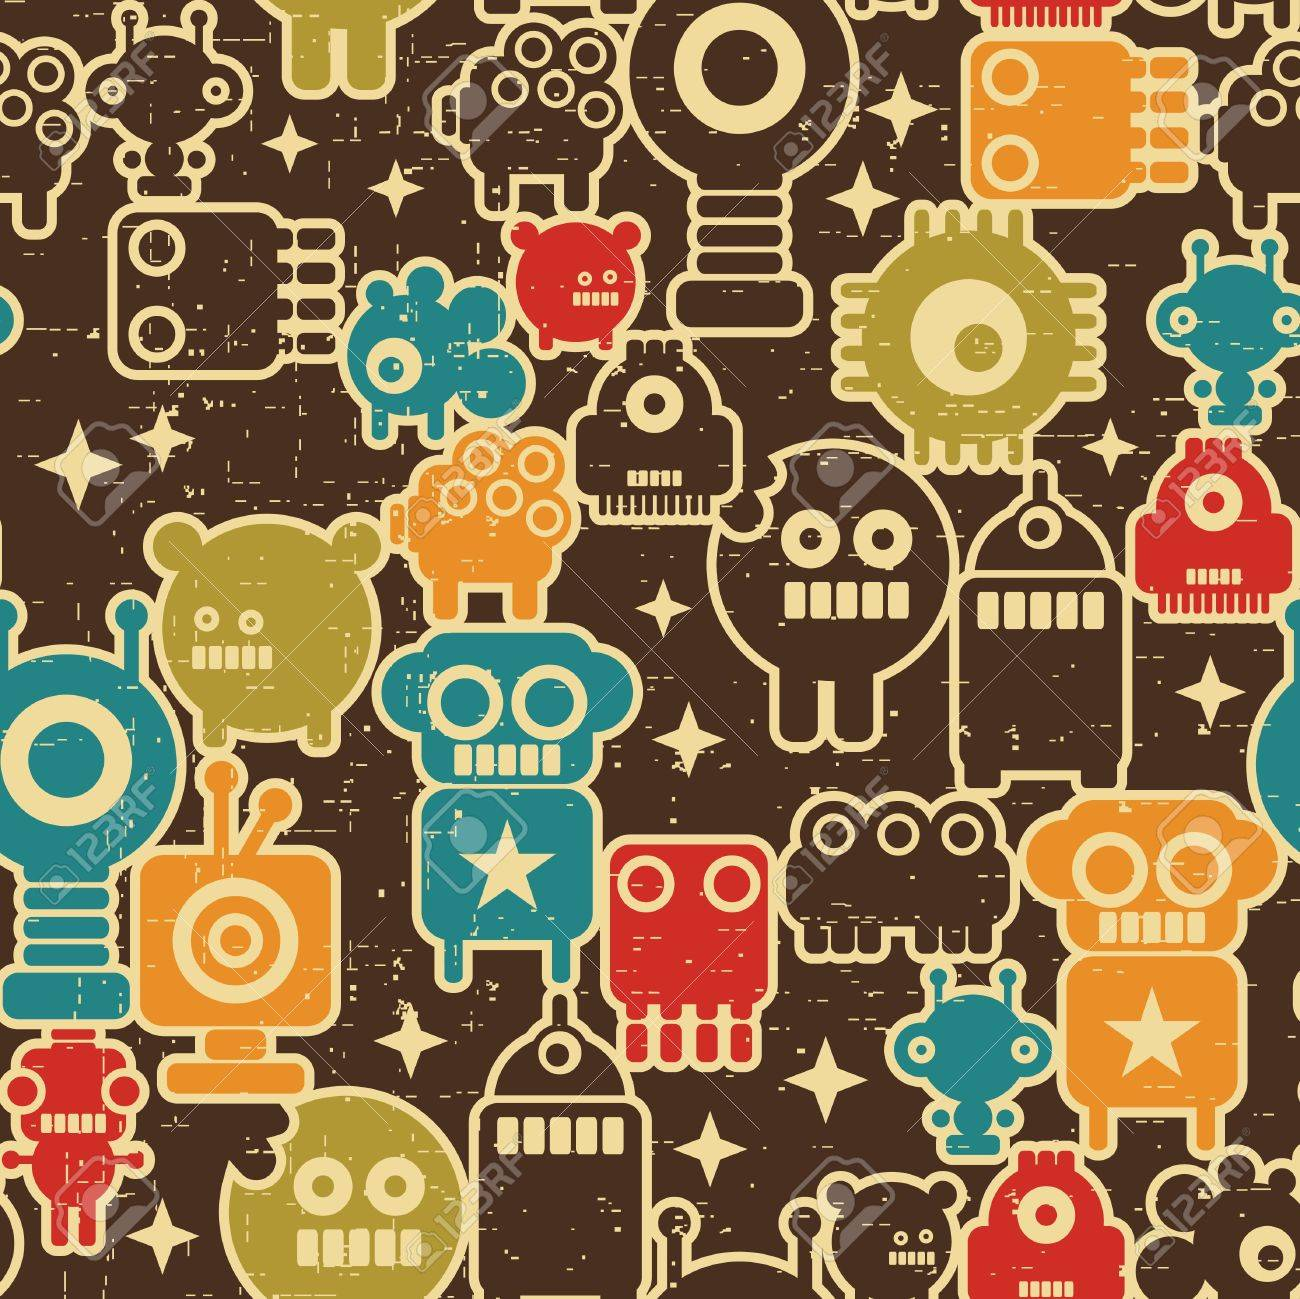 Robot and monsters modern seamless pattern in retro style #1. Stock Vector - 11747571